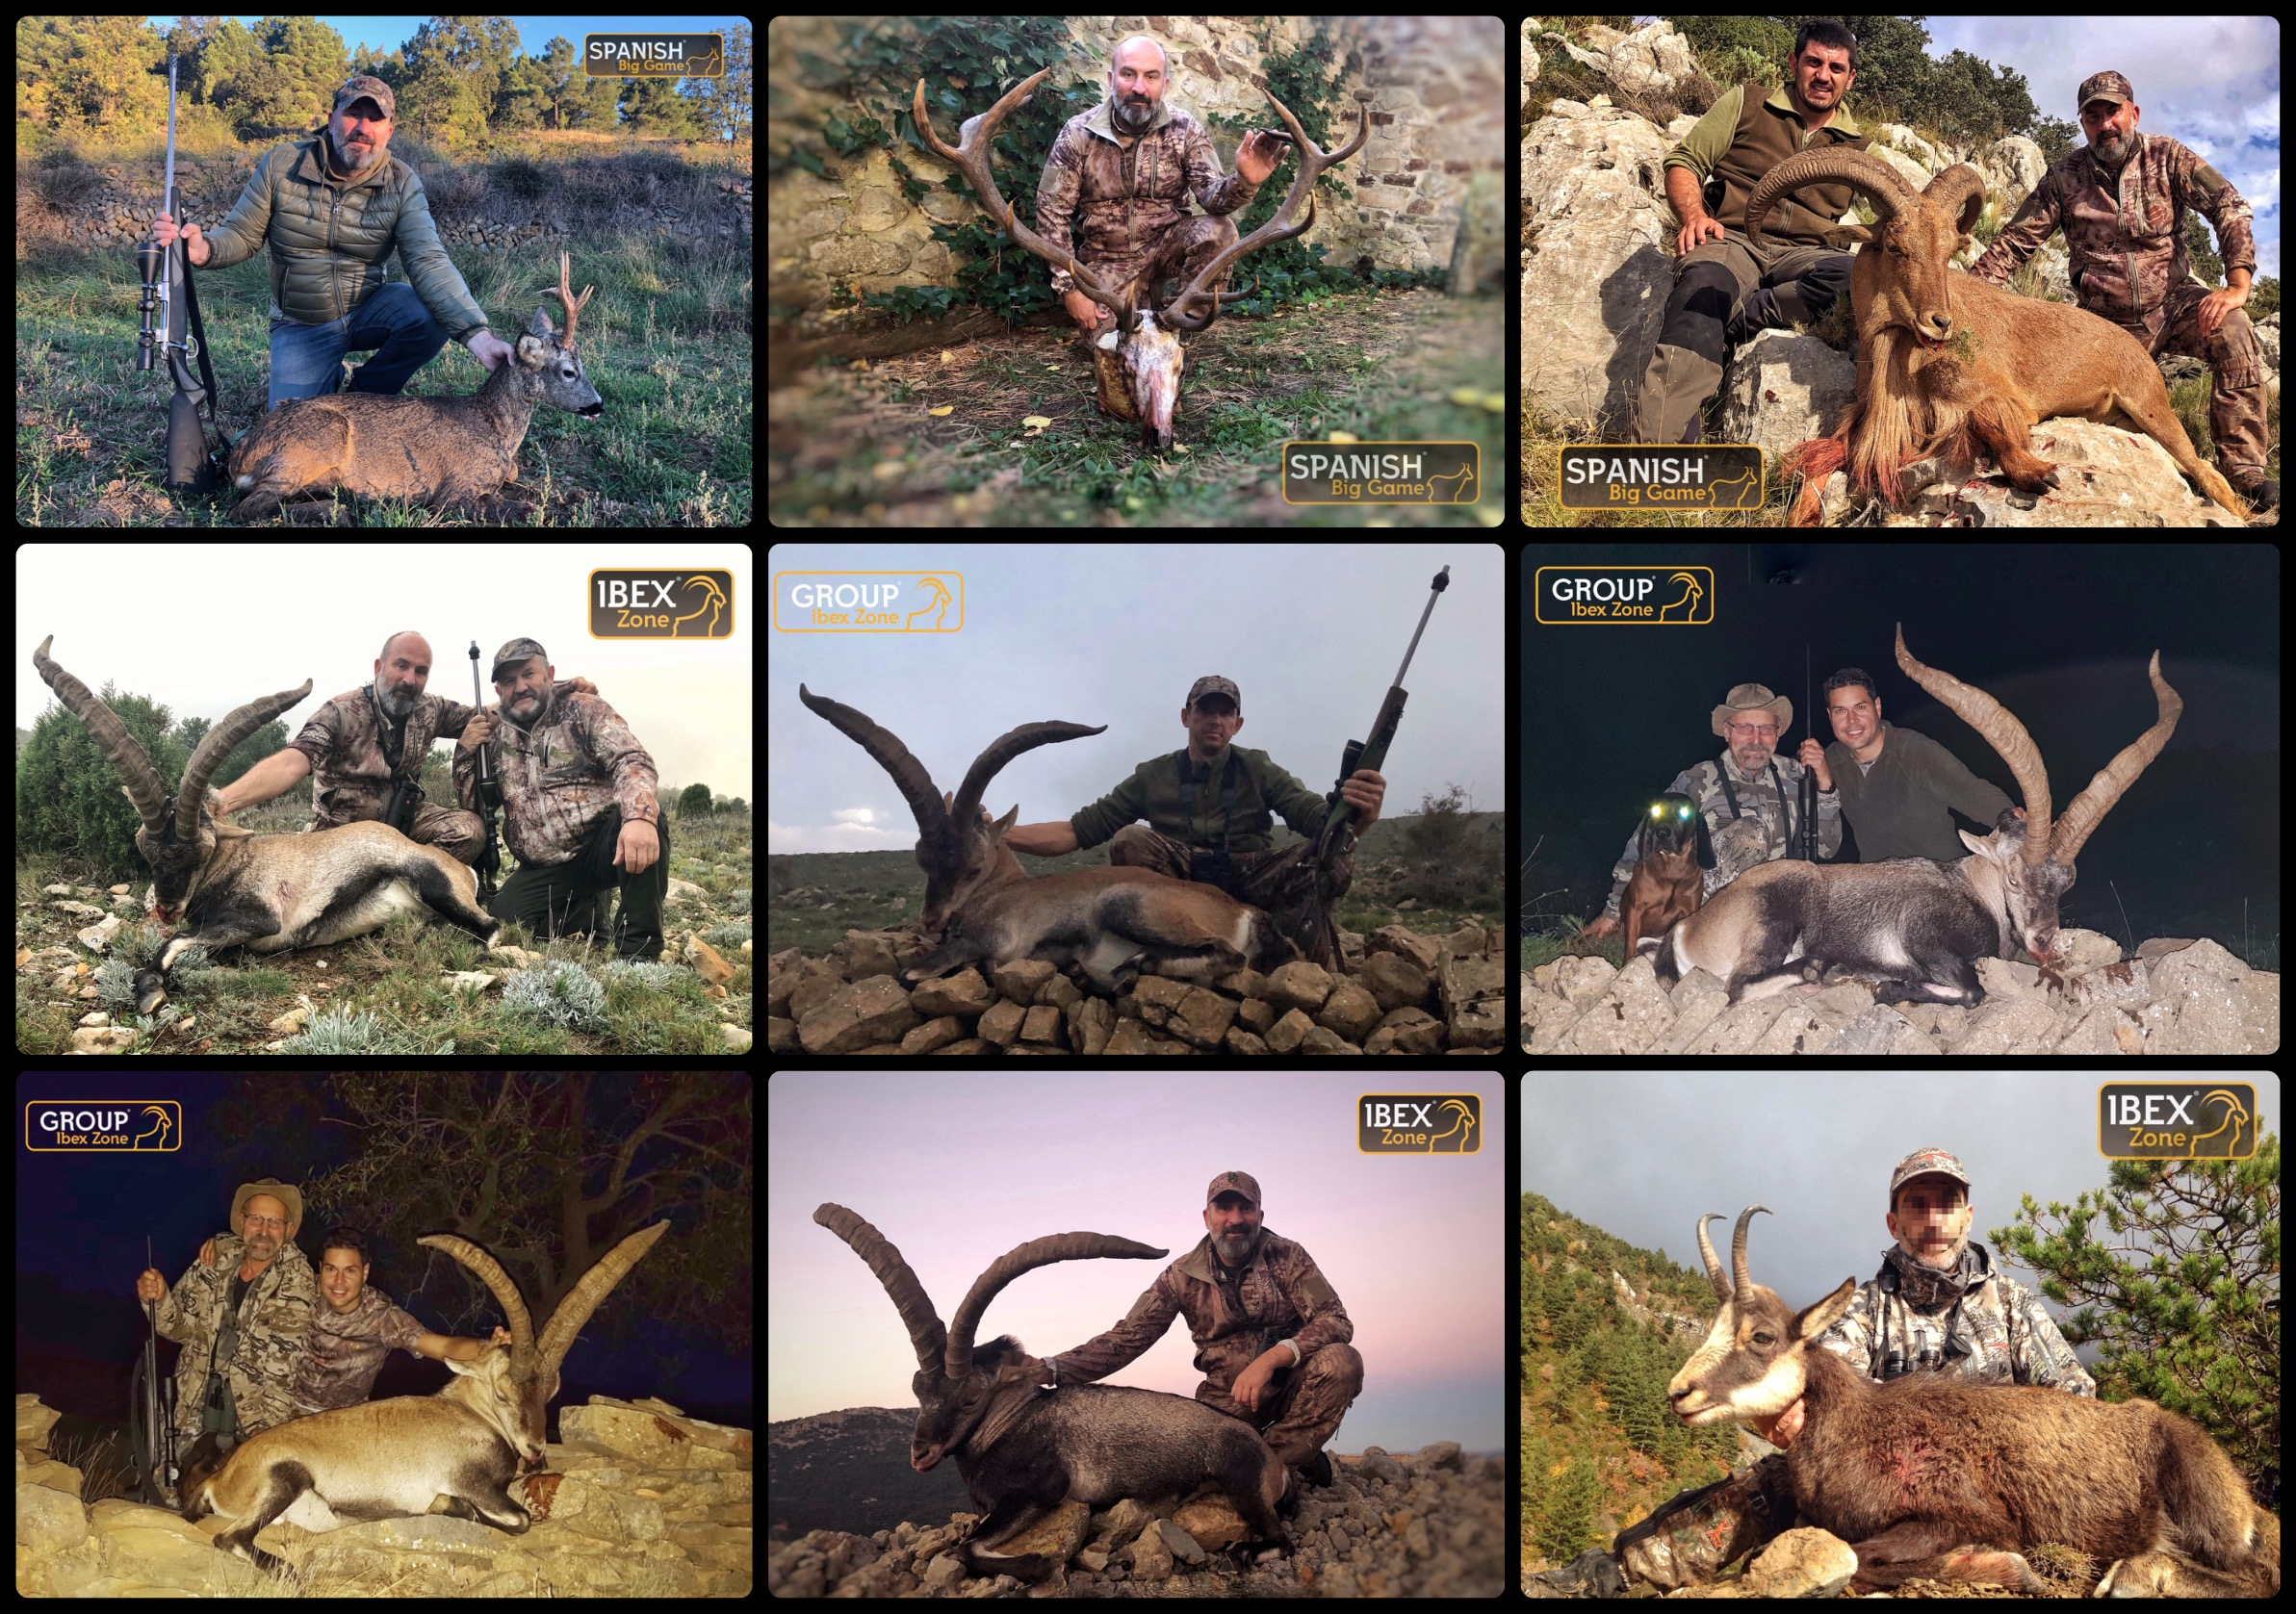 The hunting season 2018-2019 is going well, «Group Ibex Zone».